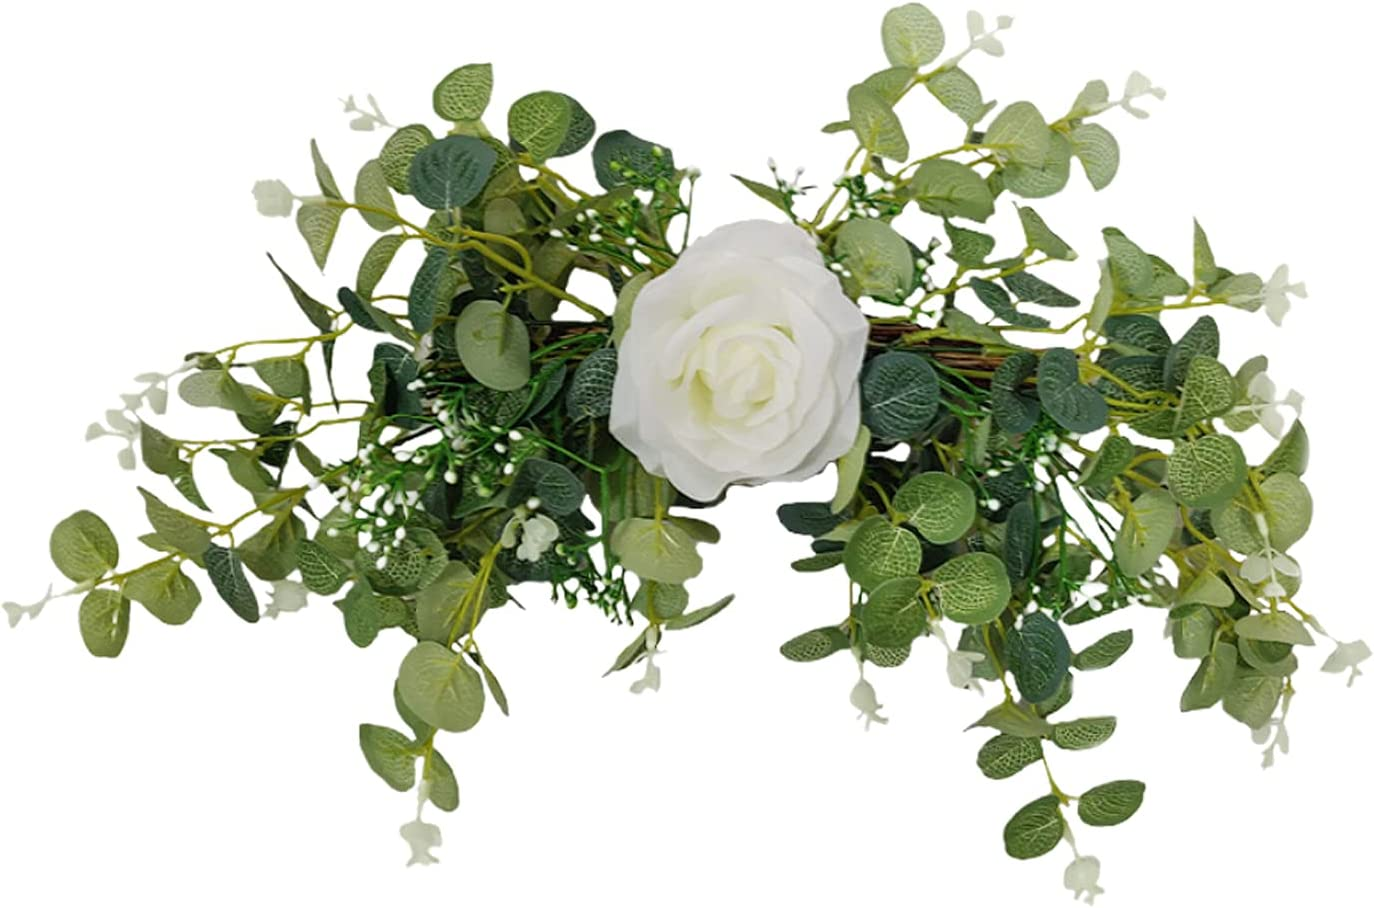 NIUXICH Sale Special Price 21.7inch Artificial Rose favorite Swag Green Silk Arch Wreat Leaf